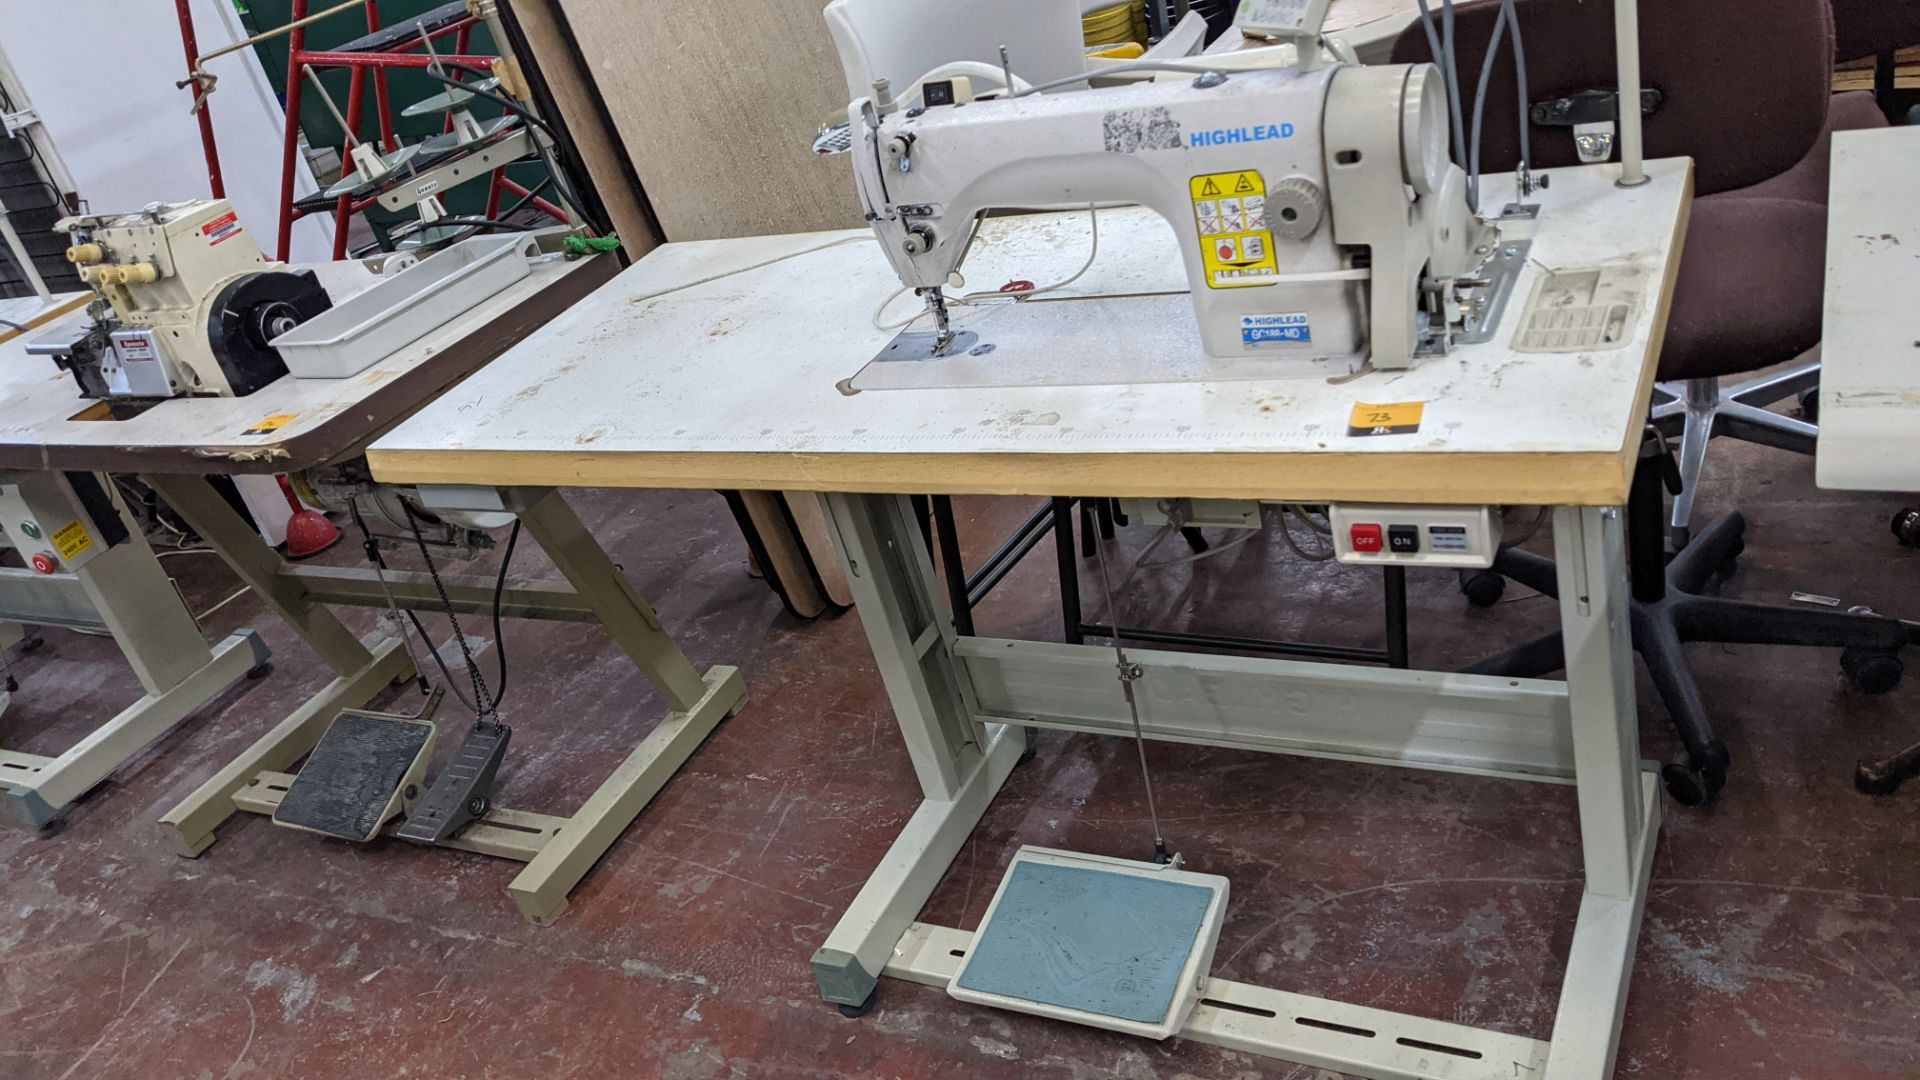 Highlead model GC188-MD sewing machine with model F-10 digital controller - Image 2 of 16